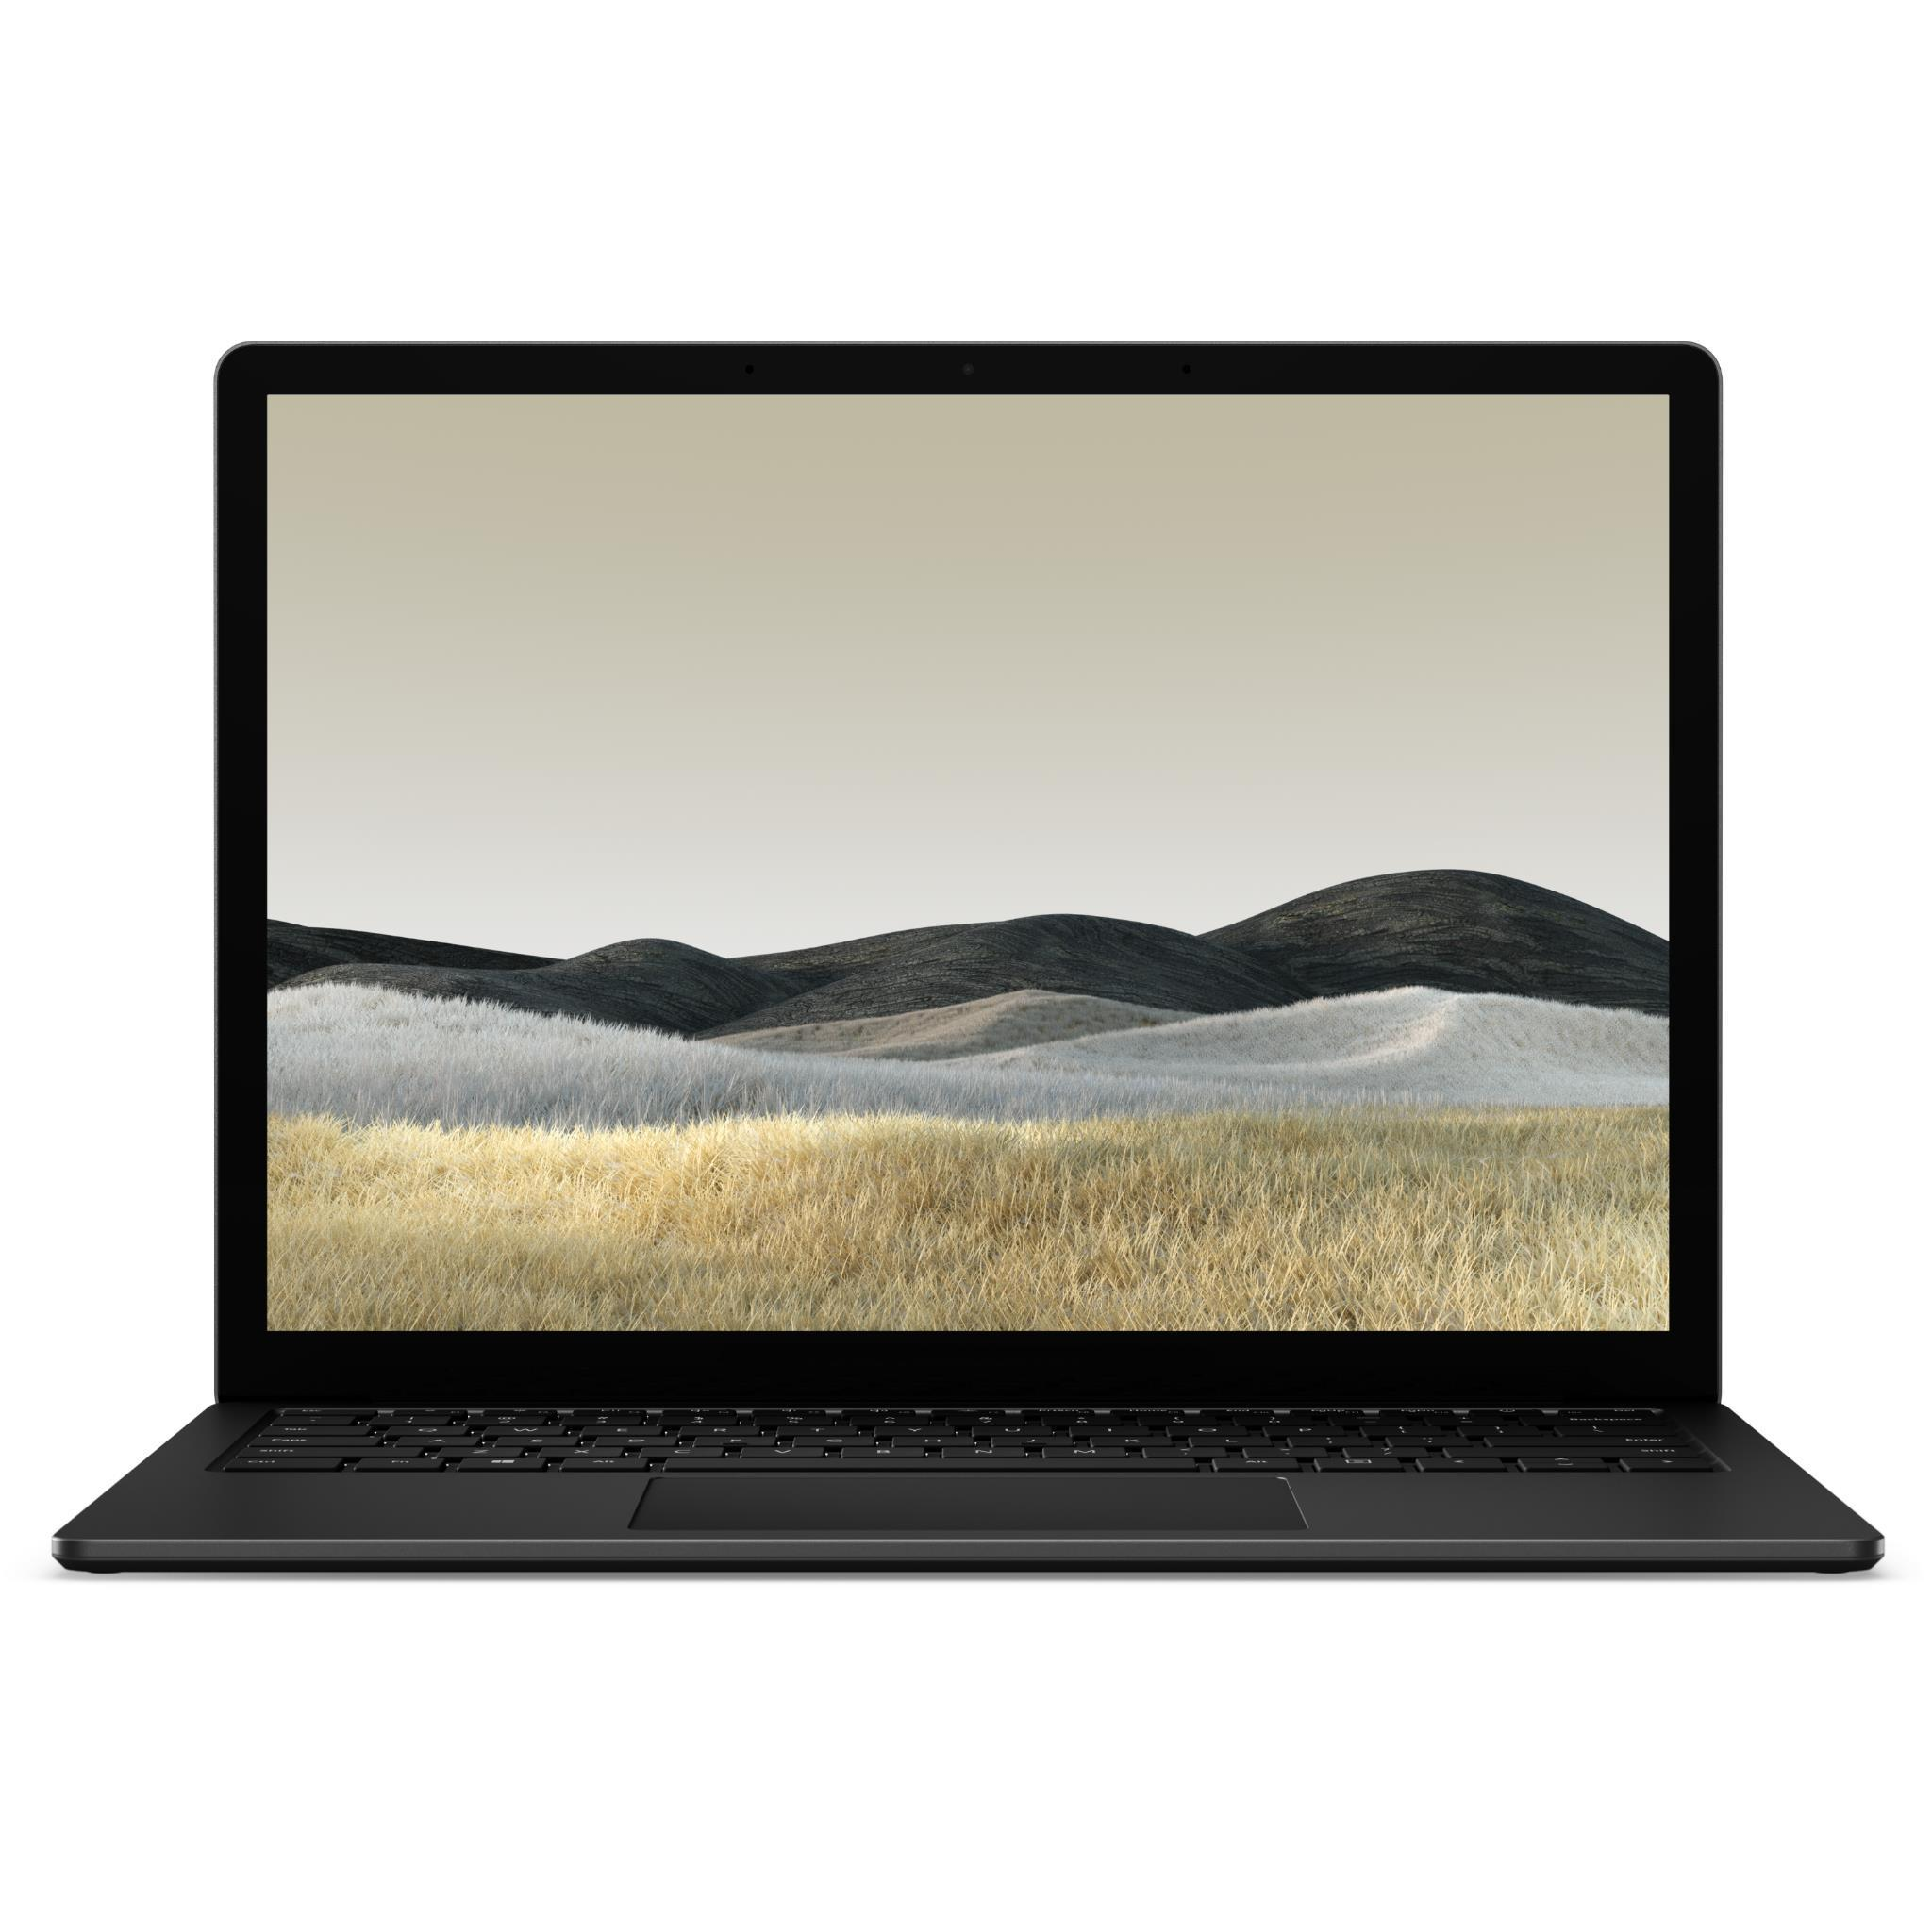 Microsoft Surface Laptop 3 15″ AMD 256GB/8GB (Black)